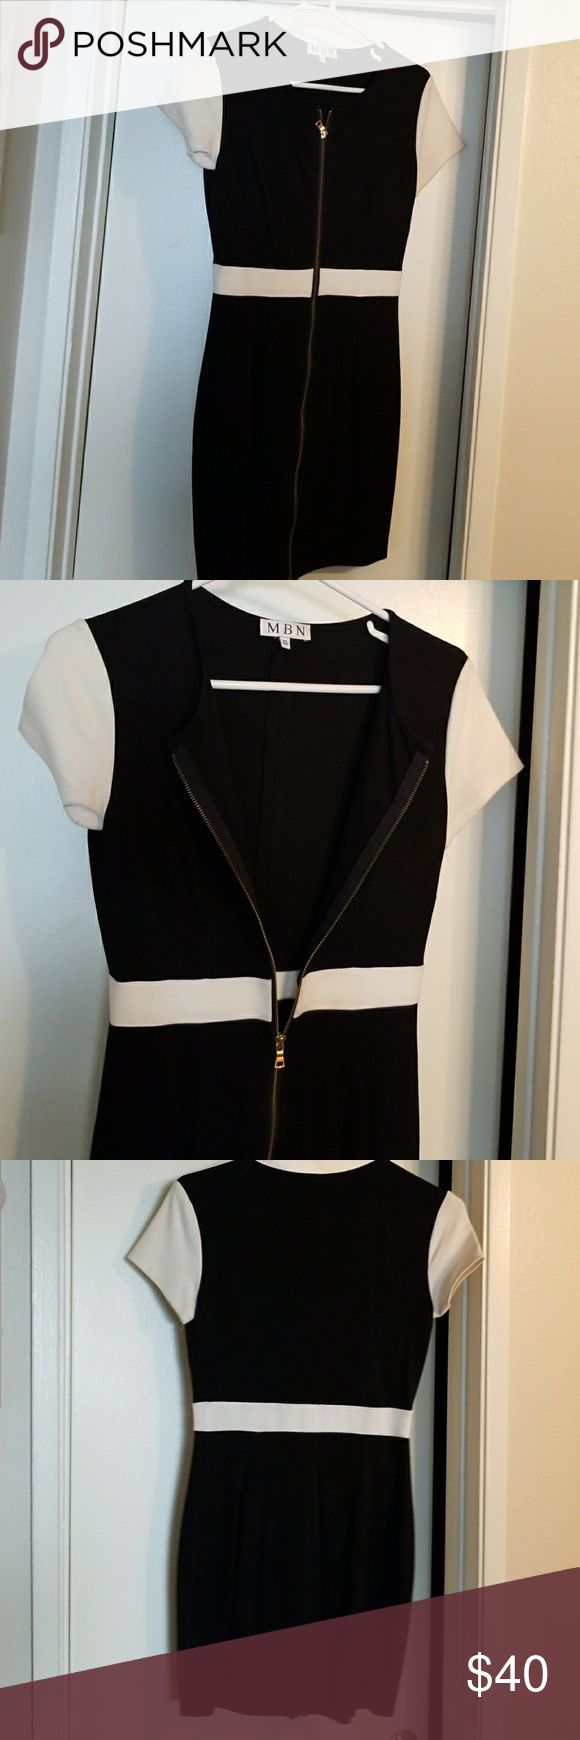 Black and white zip up work dress Zips all the way up and adjust how ever you want. Simple Black and white. Fits like a glove.  Size small. Great for day to night for work and cocktails. MBN Dresses Midi